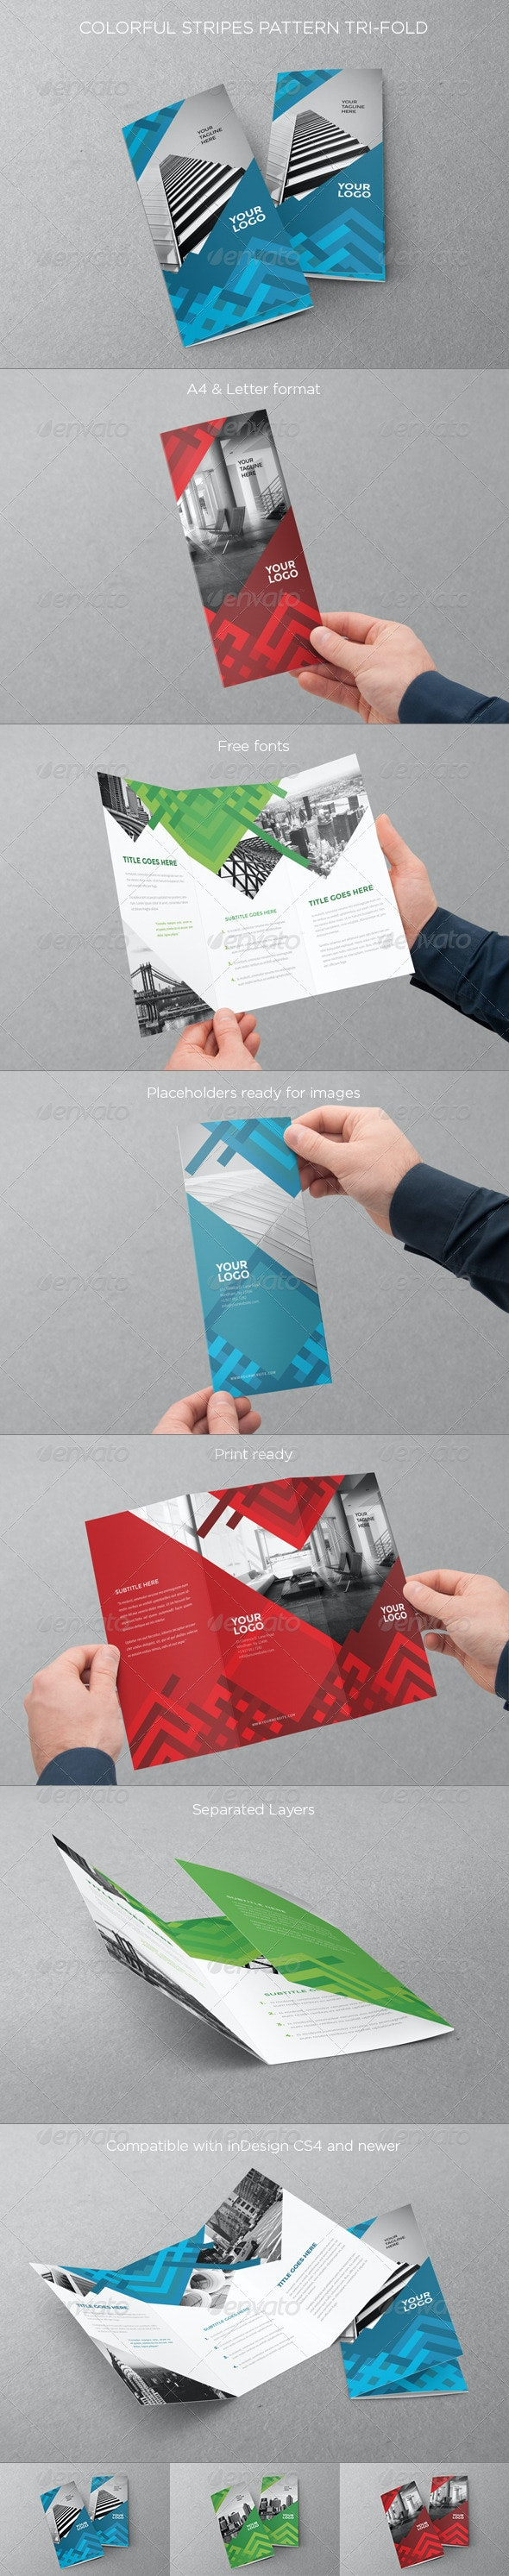 Colorful Stripes Pattern Trifold - Brochures Print Templates